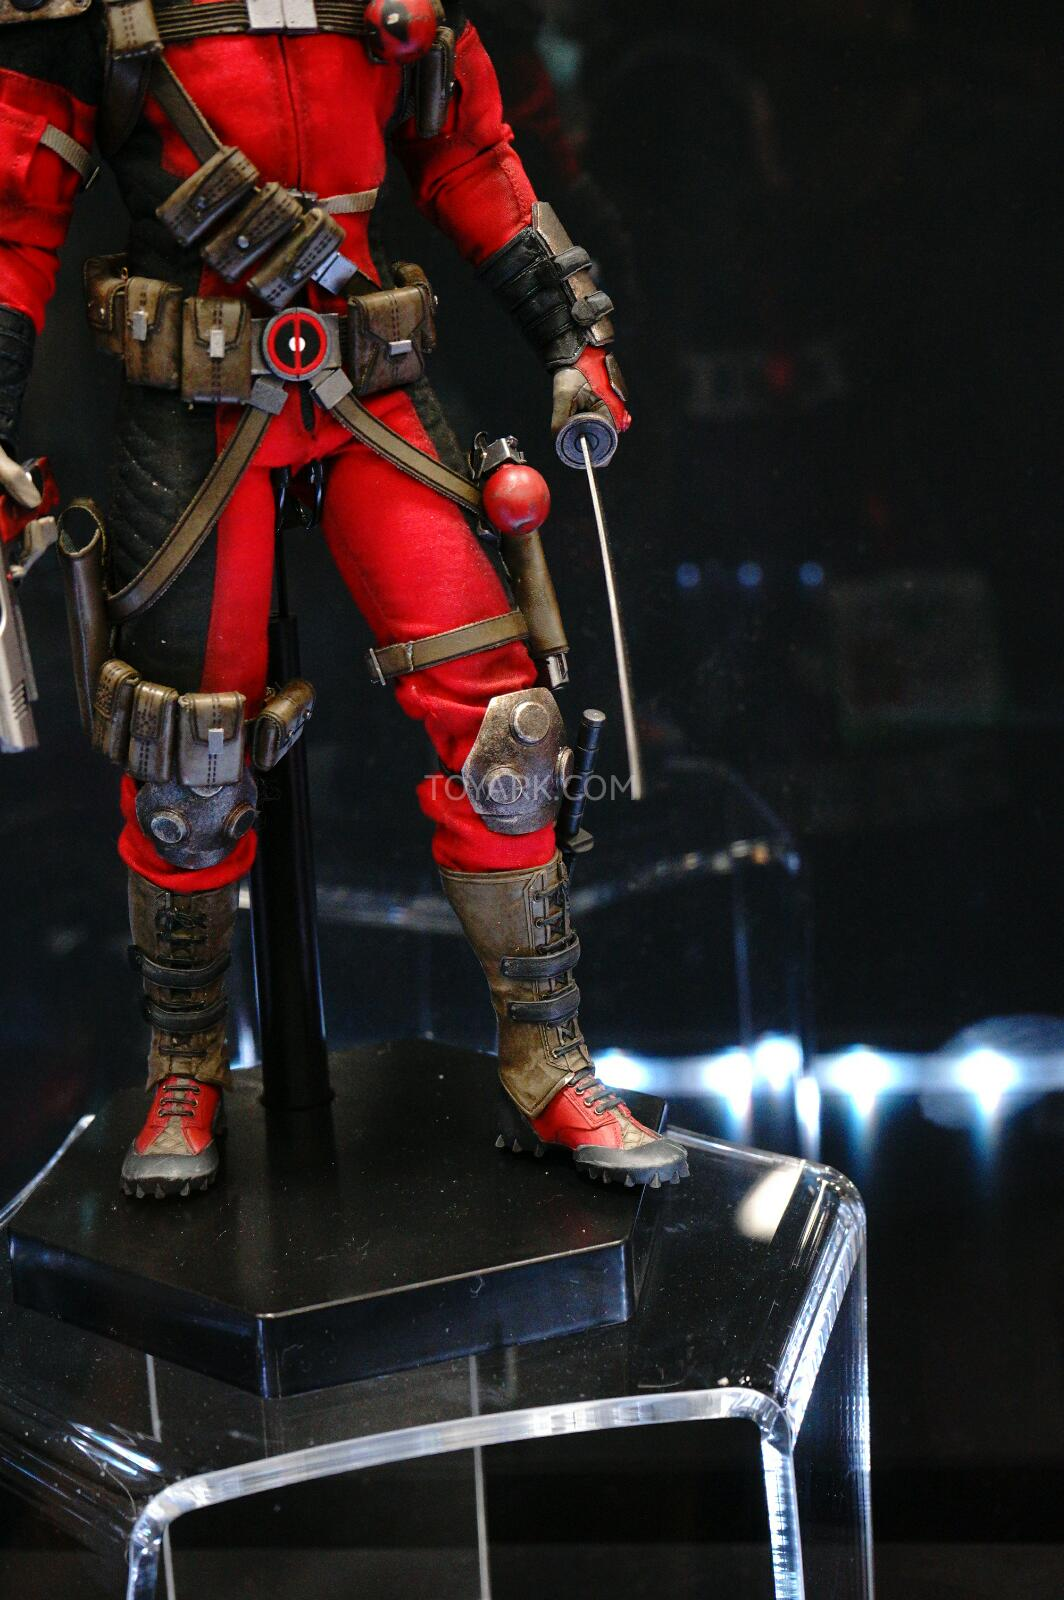 [Sideshow] Marvel Sixth Scale Collection - Deadpool DSC07545